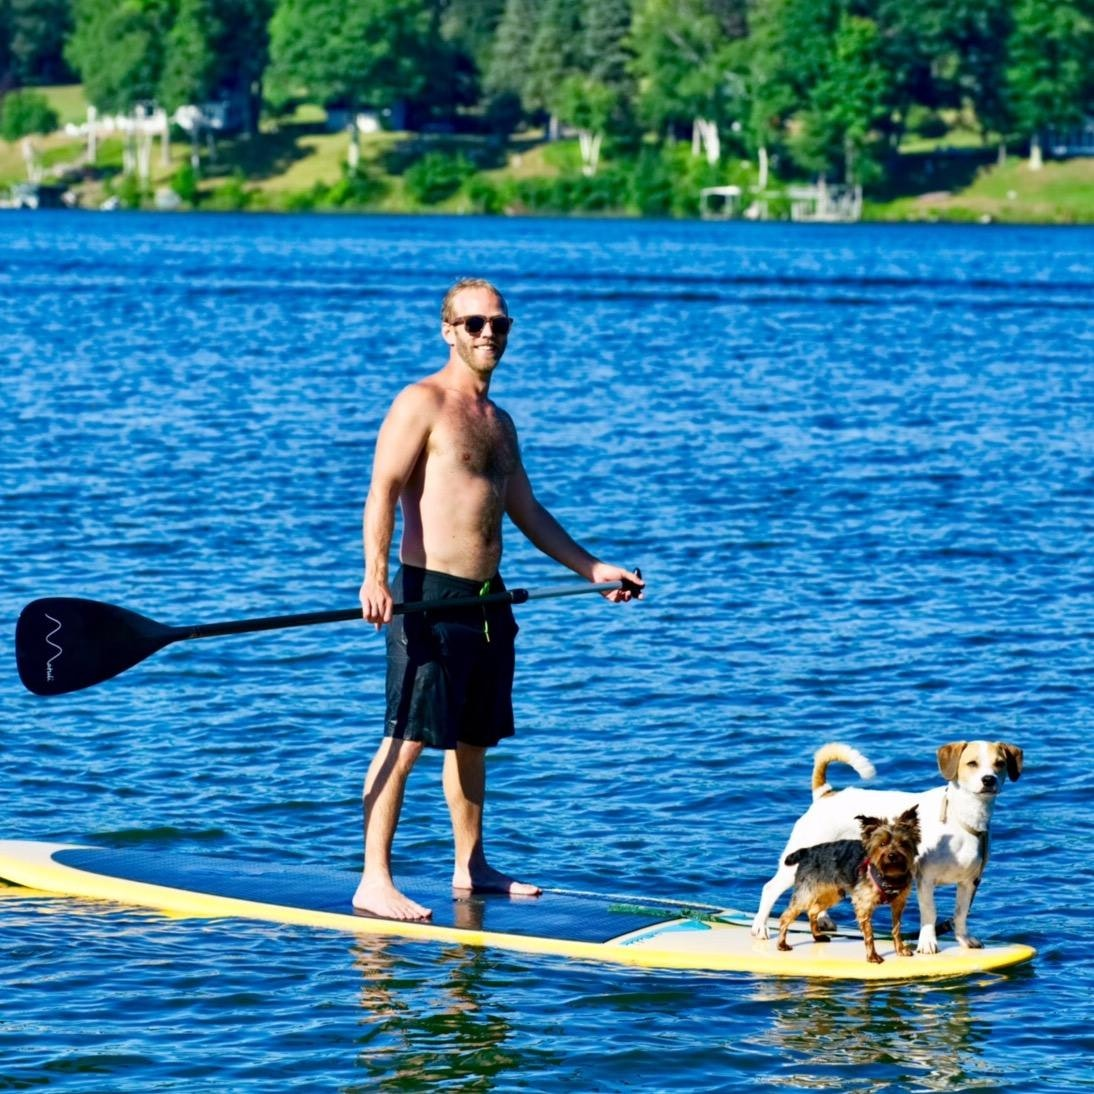 Mike's dog boarding